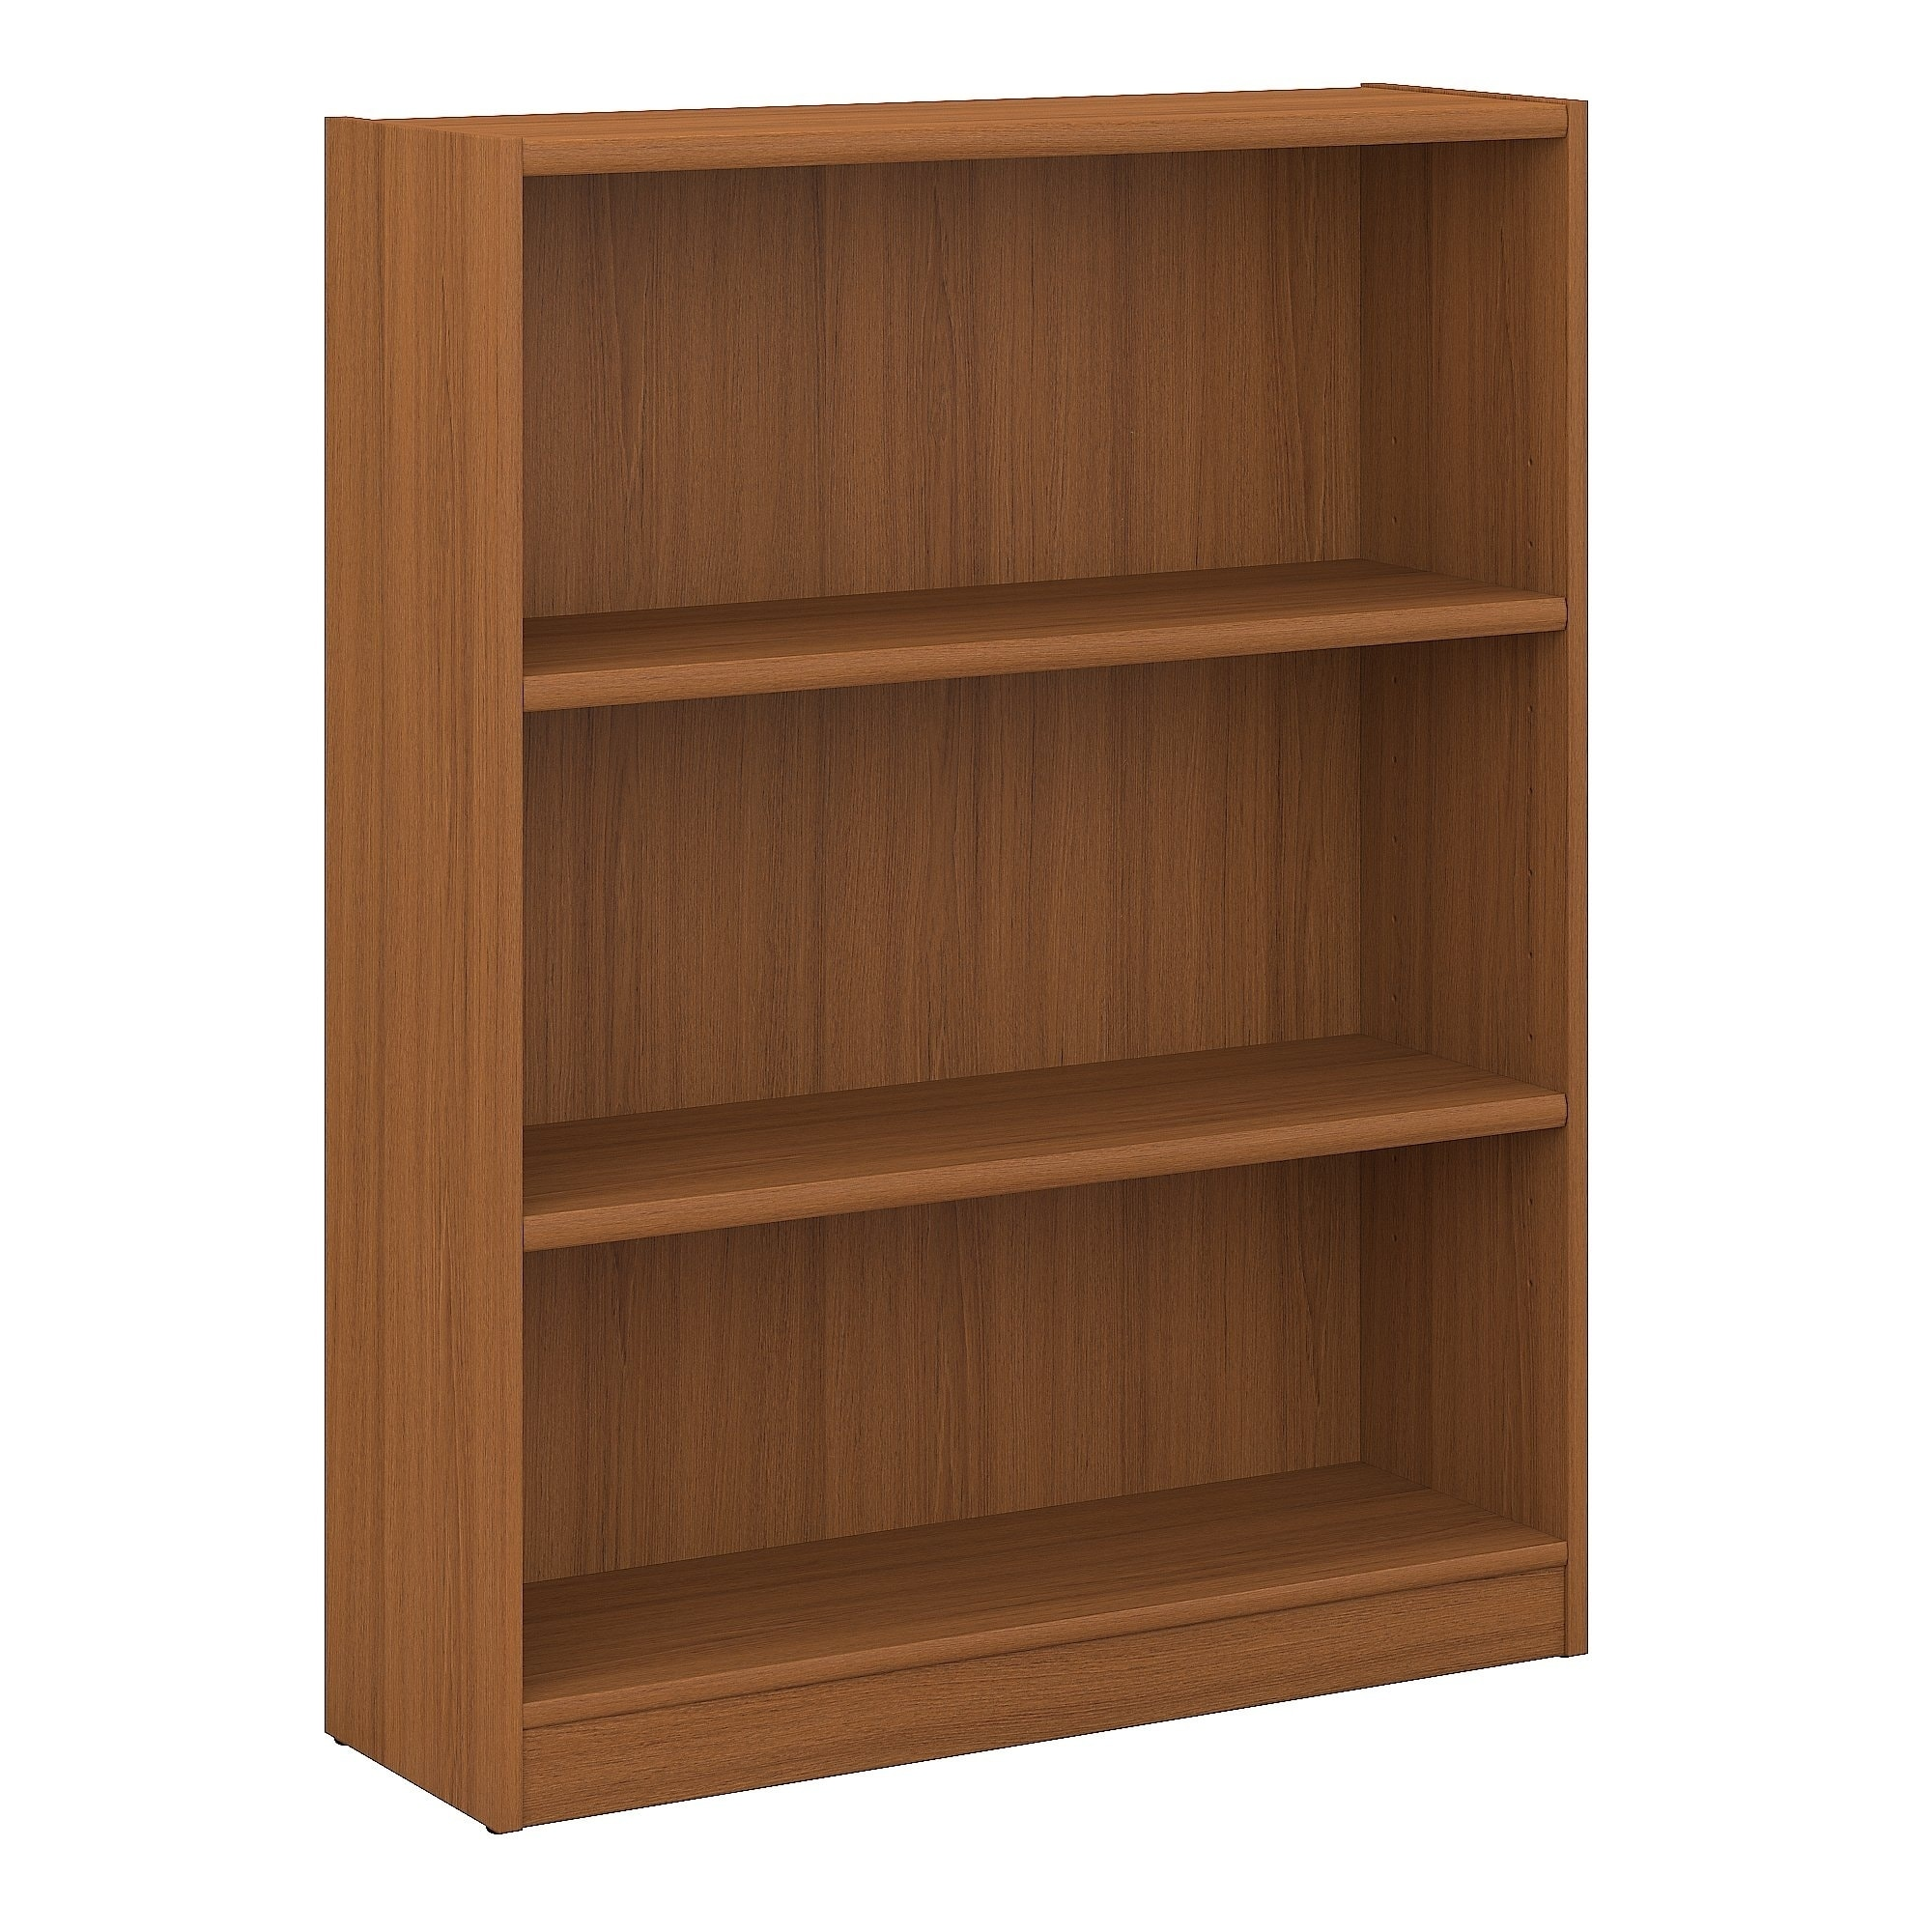 natural maple pd shore furniture bookcase shop south at shelf axess